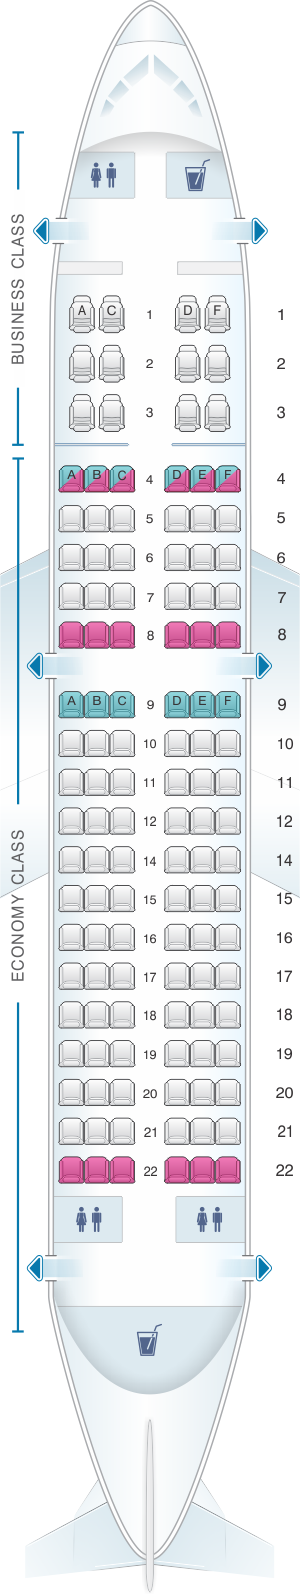 Seat map for Avianca Airbus A319